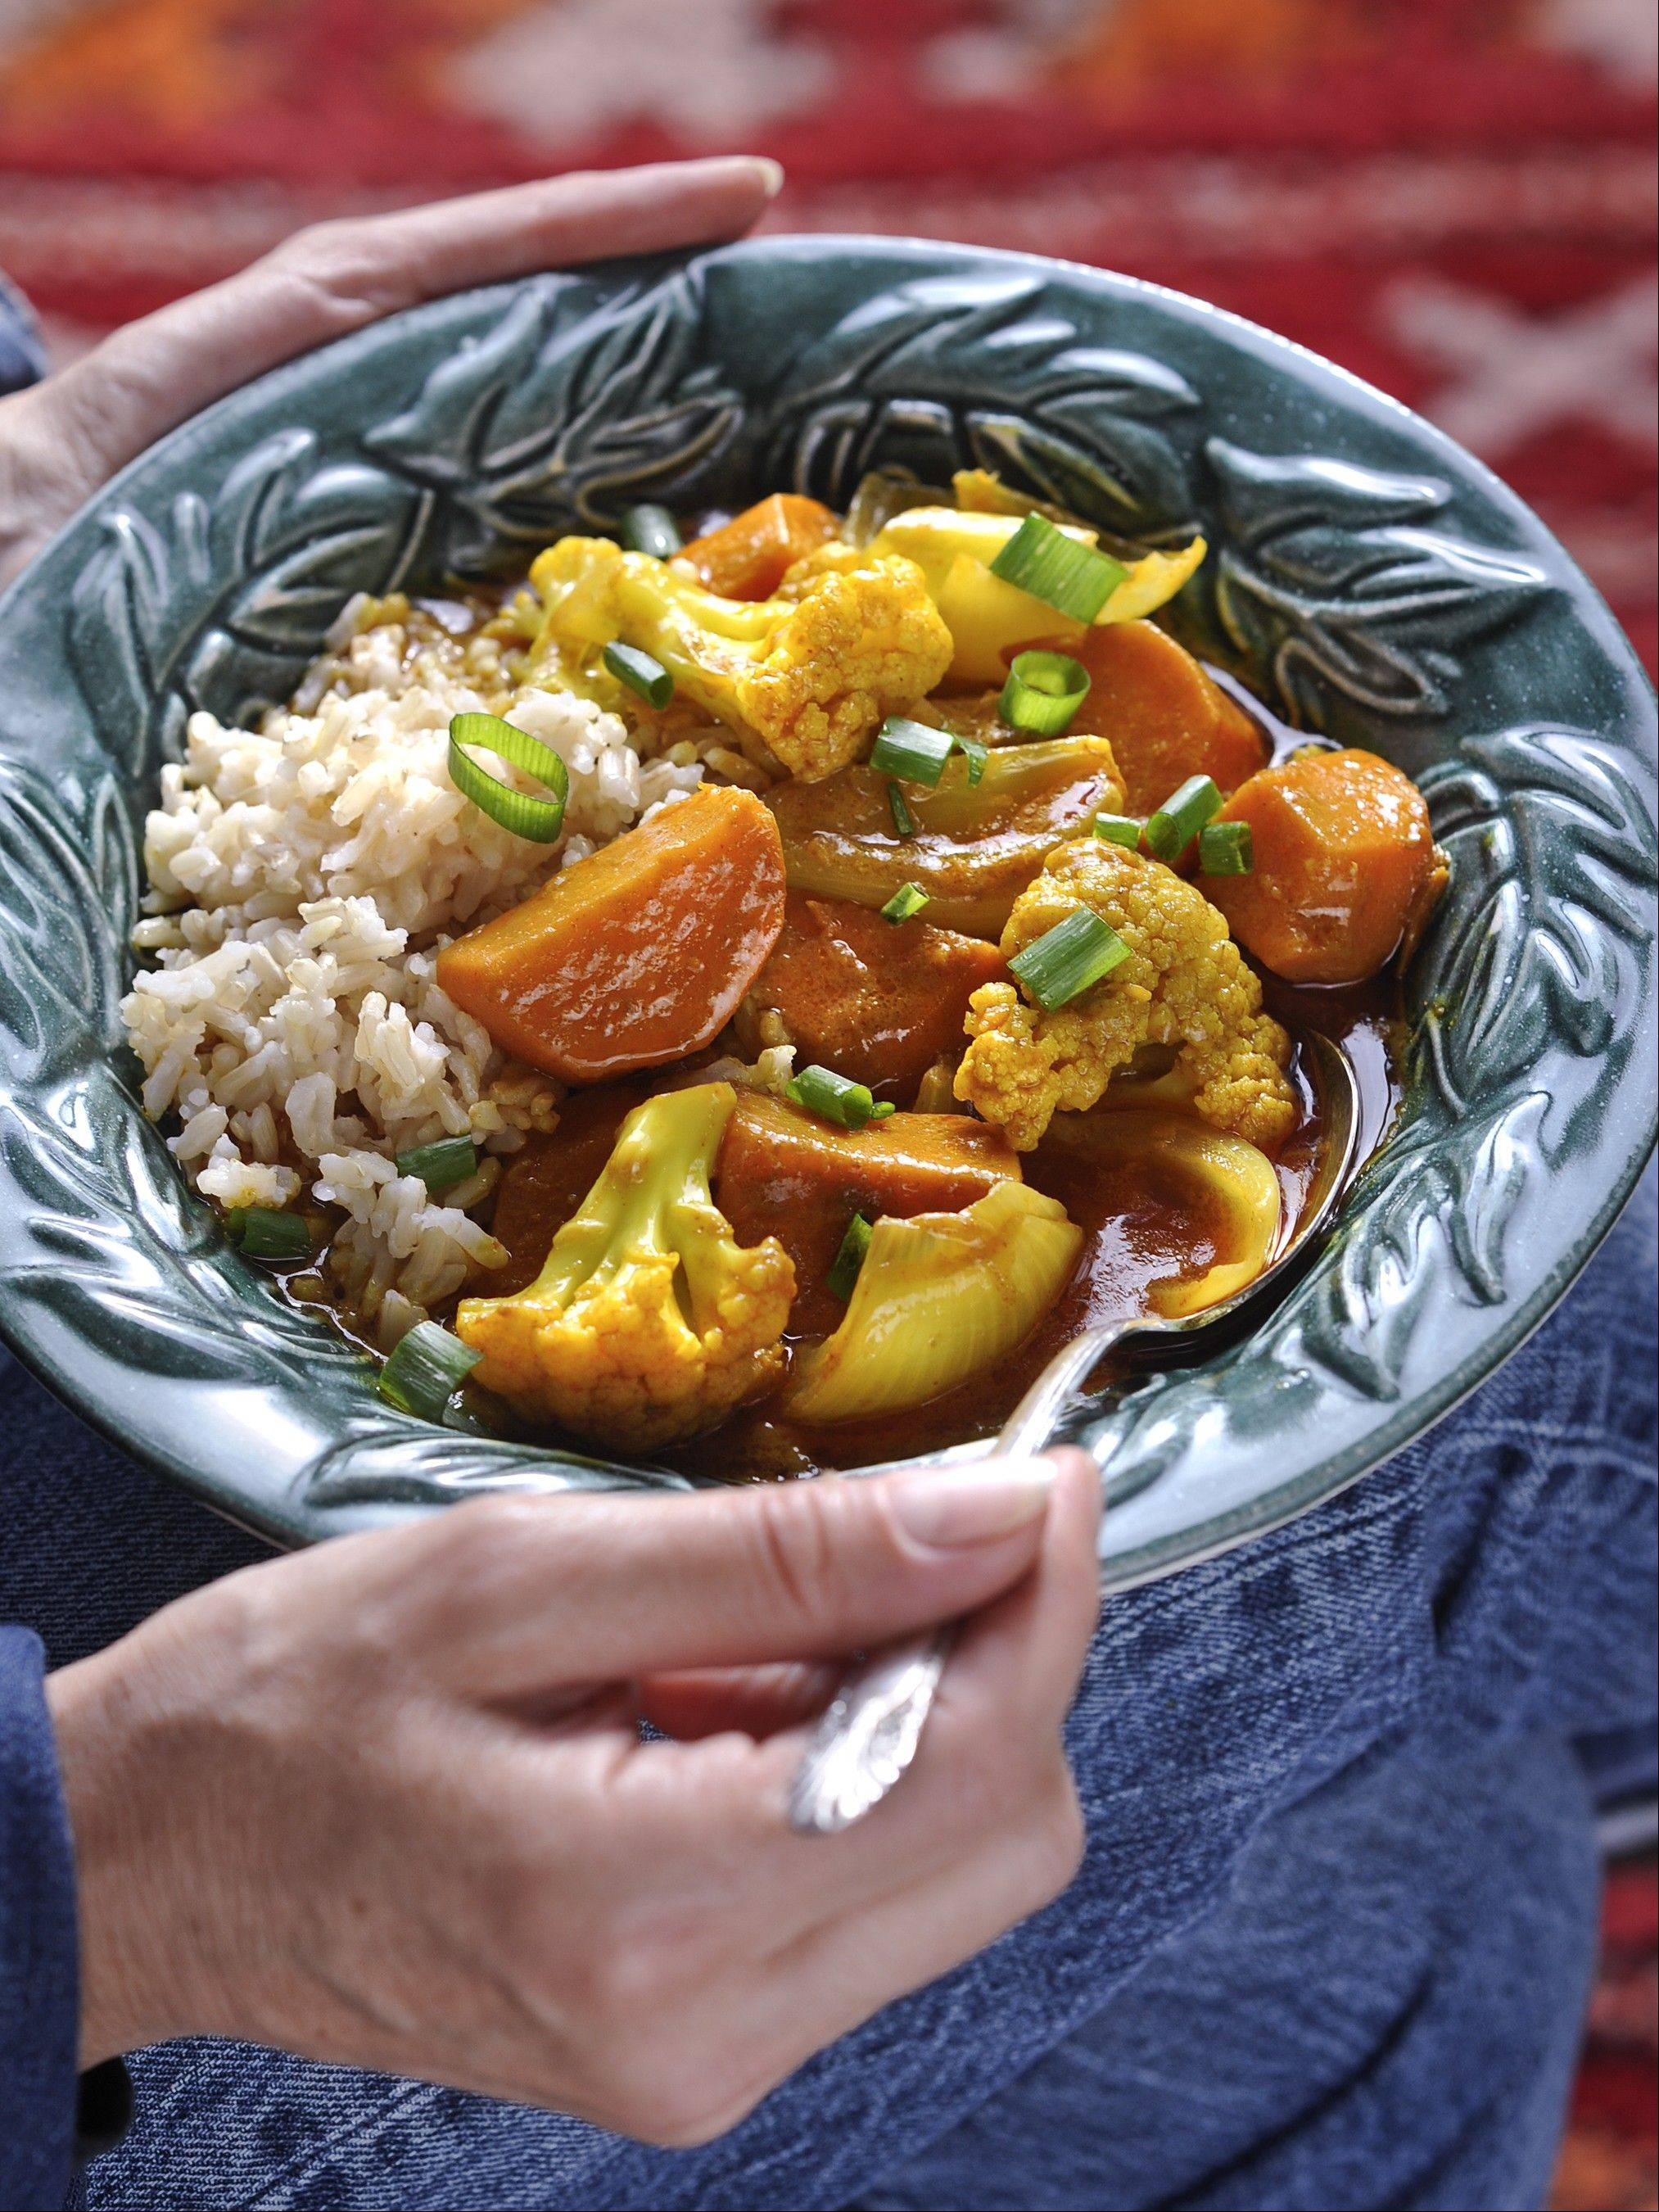 "Cauliflower takes on vibrant flavors in a stewlike Red Thai Curry from Barbara Damrosch and Eliot Coleman's ""The Four Season Farm Gardener's Cookbook."""